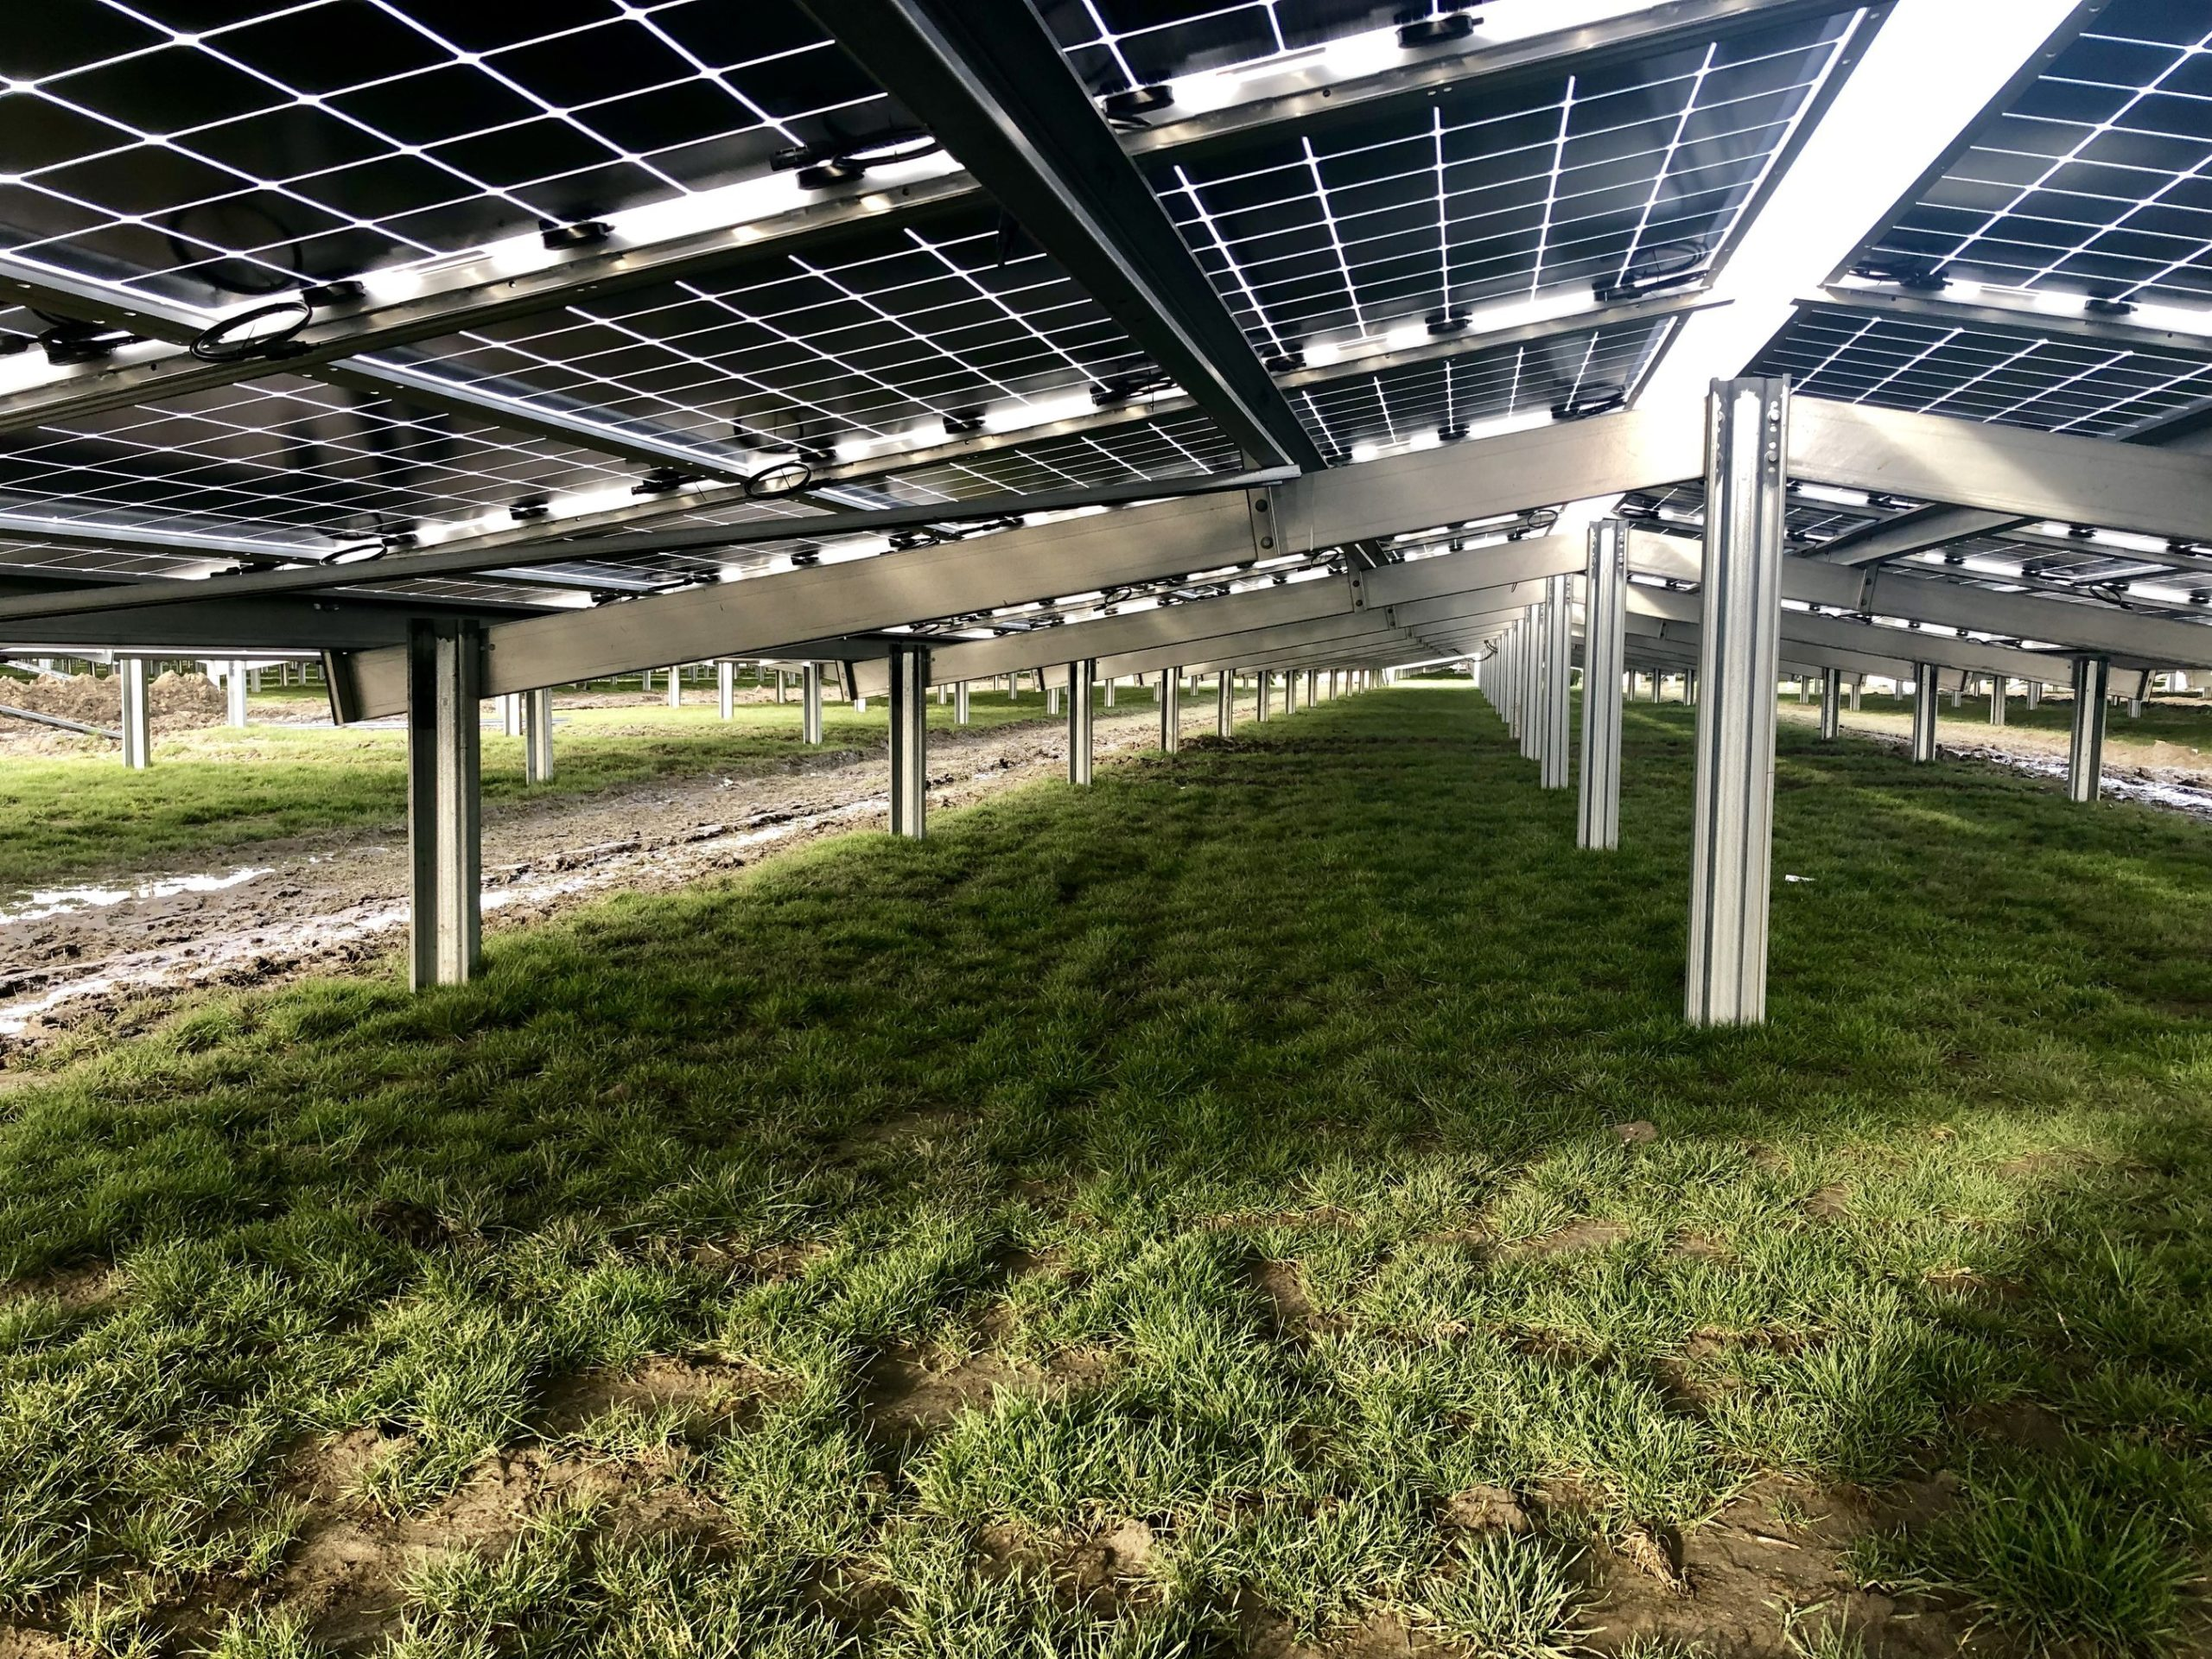 The Zonnepark Rilland PV project is claimed to be the largest utility-scale system built with N-type bifacial solar modules in Europe to date, utilising 40,000 modules in a novel canted (East-West) orientated, low-level mounting system. Image: Jolywood